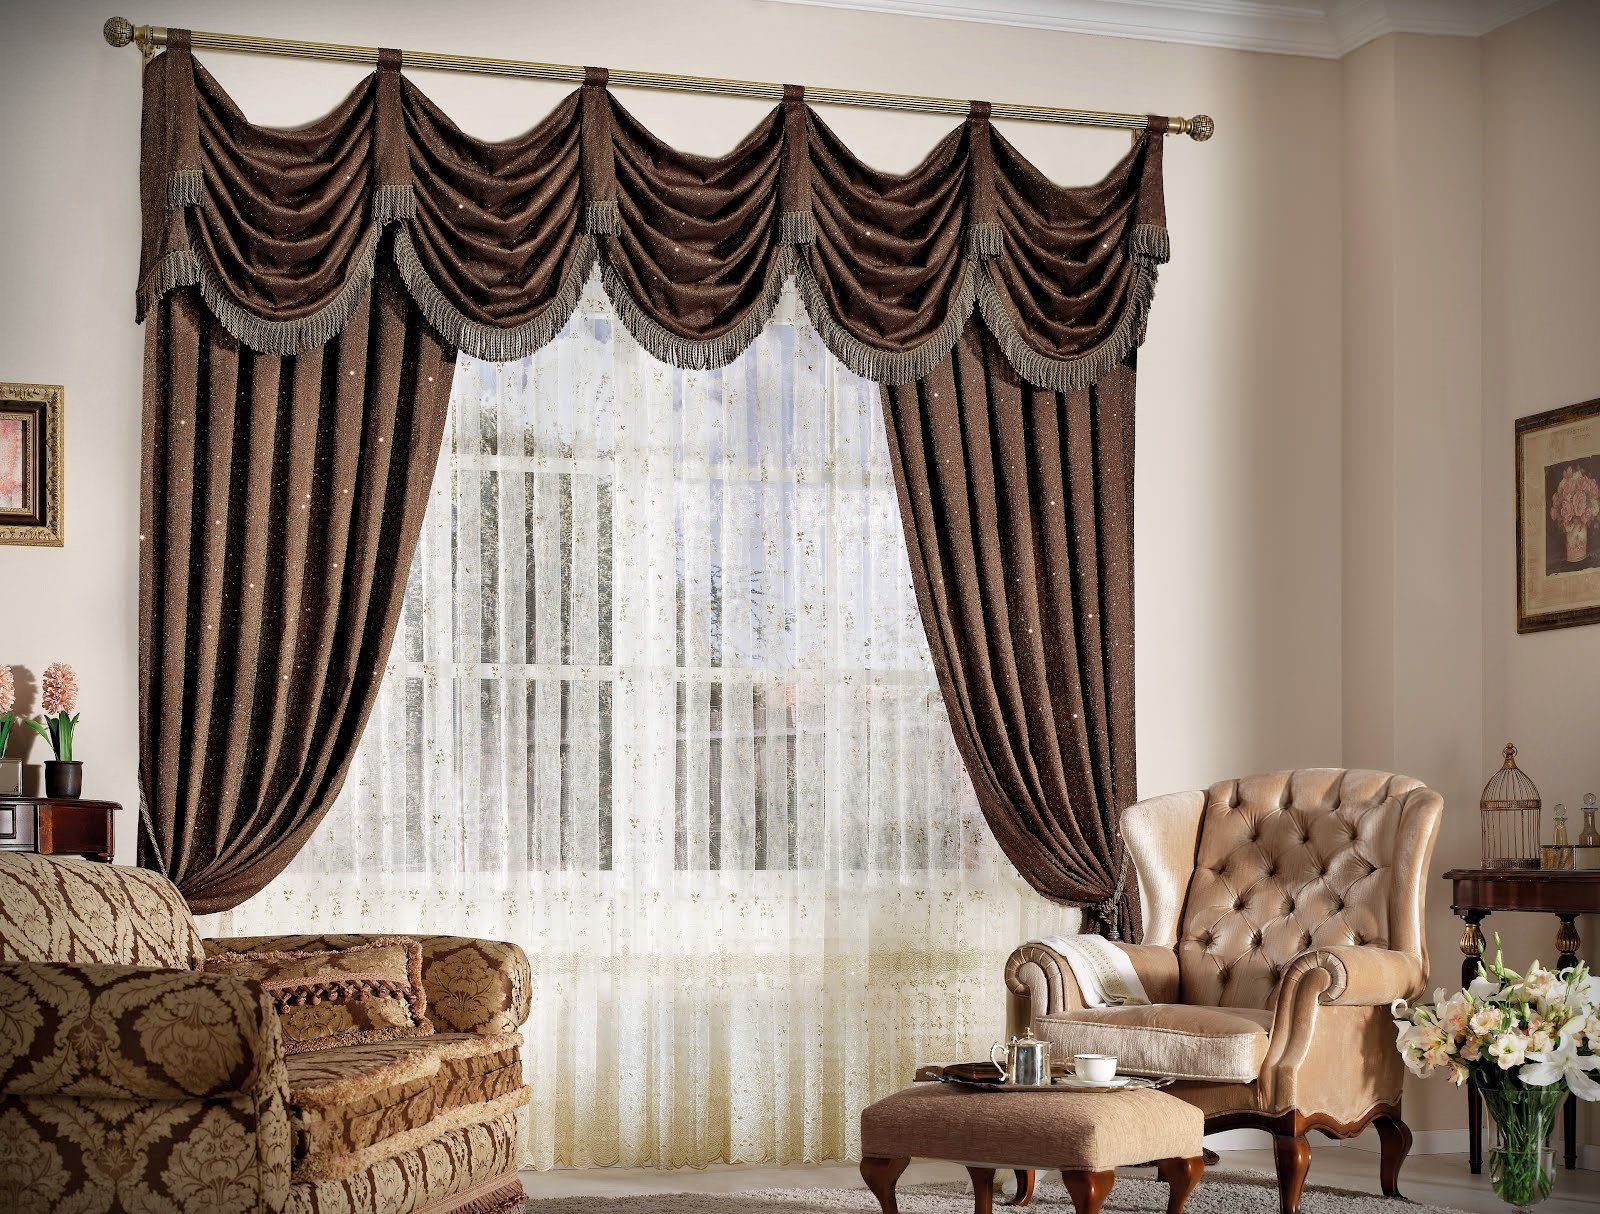 Brown curtains designs for living room - New Classic Curtain Designs Bottom Of Curtains With Lining Management Of Sunshine And Temperature Make It Necessary In Hot Climates As It Could